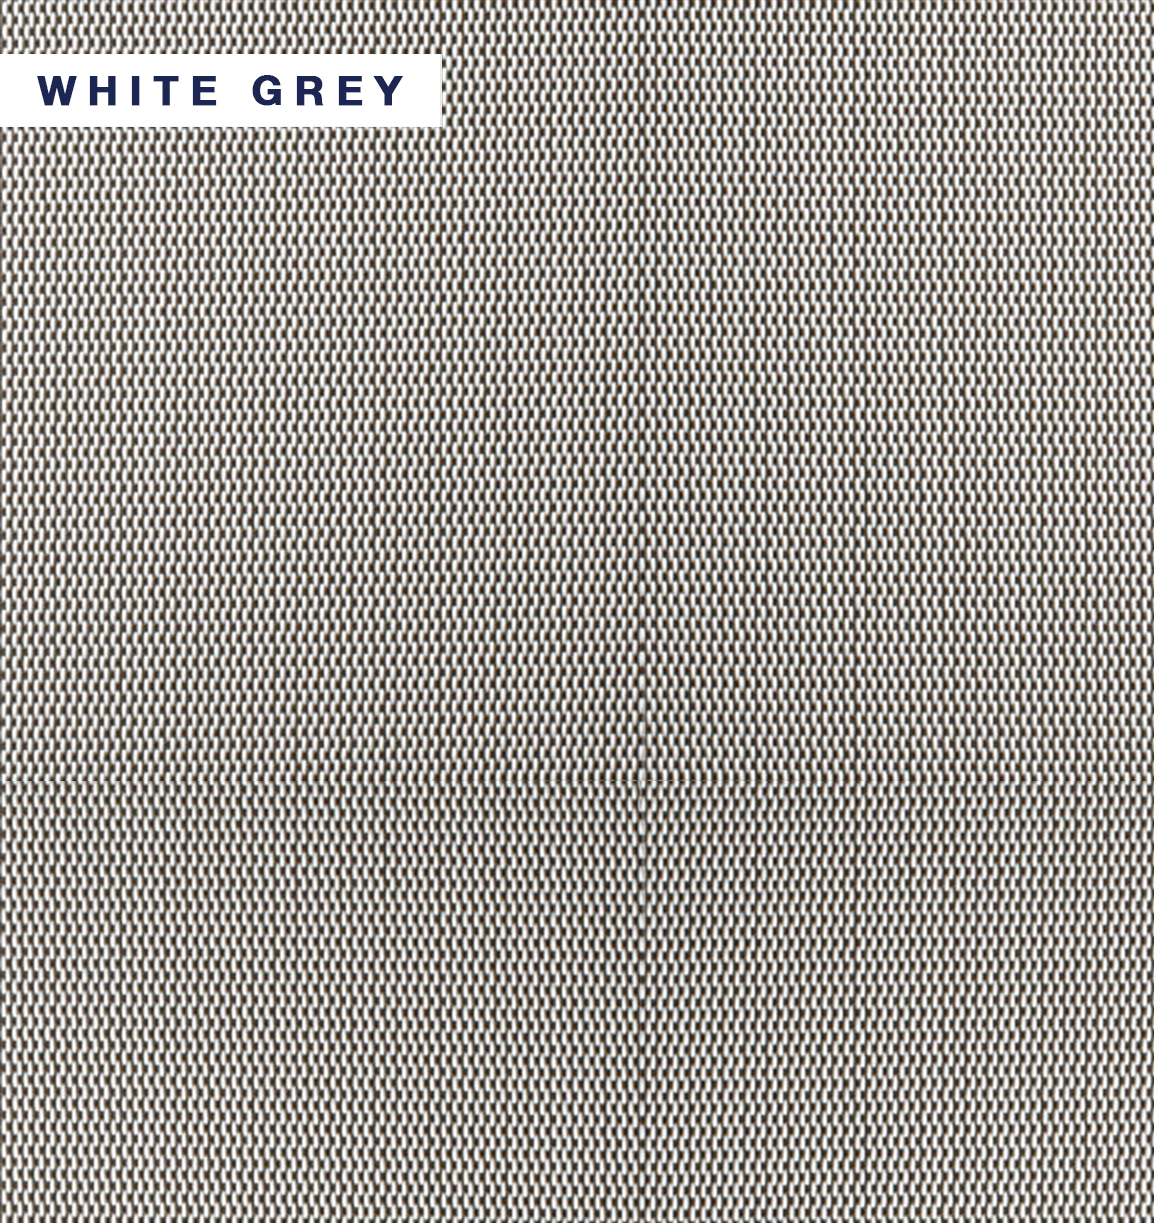 Vivid Shade - White Grey.jpg